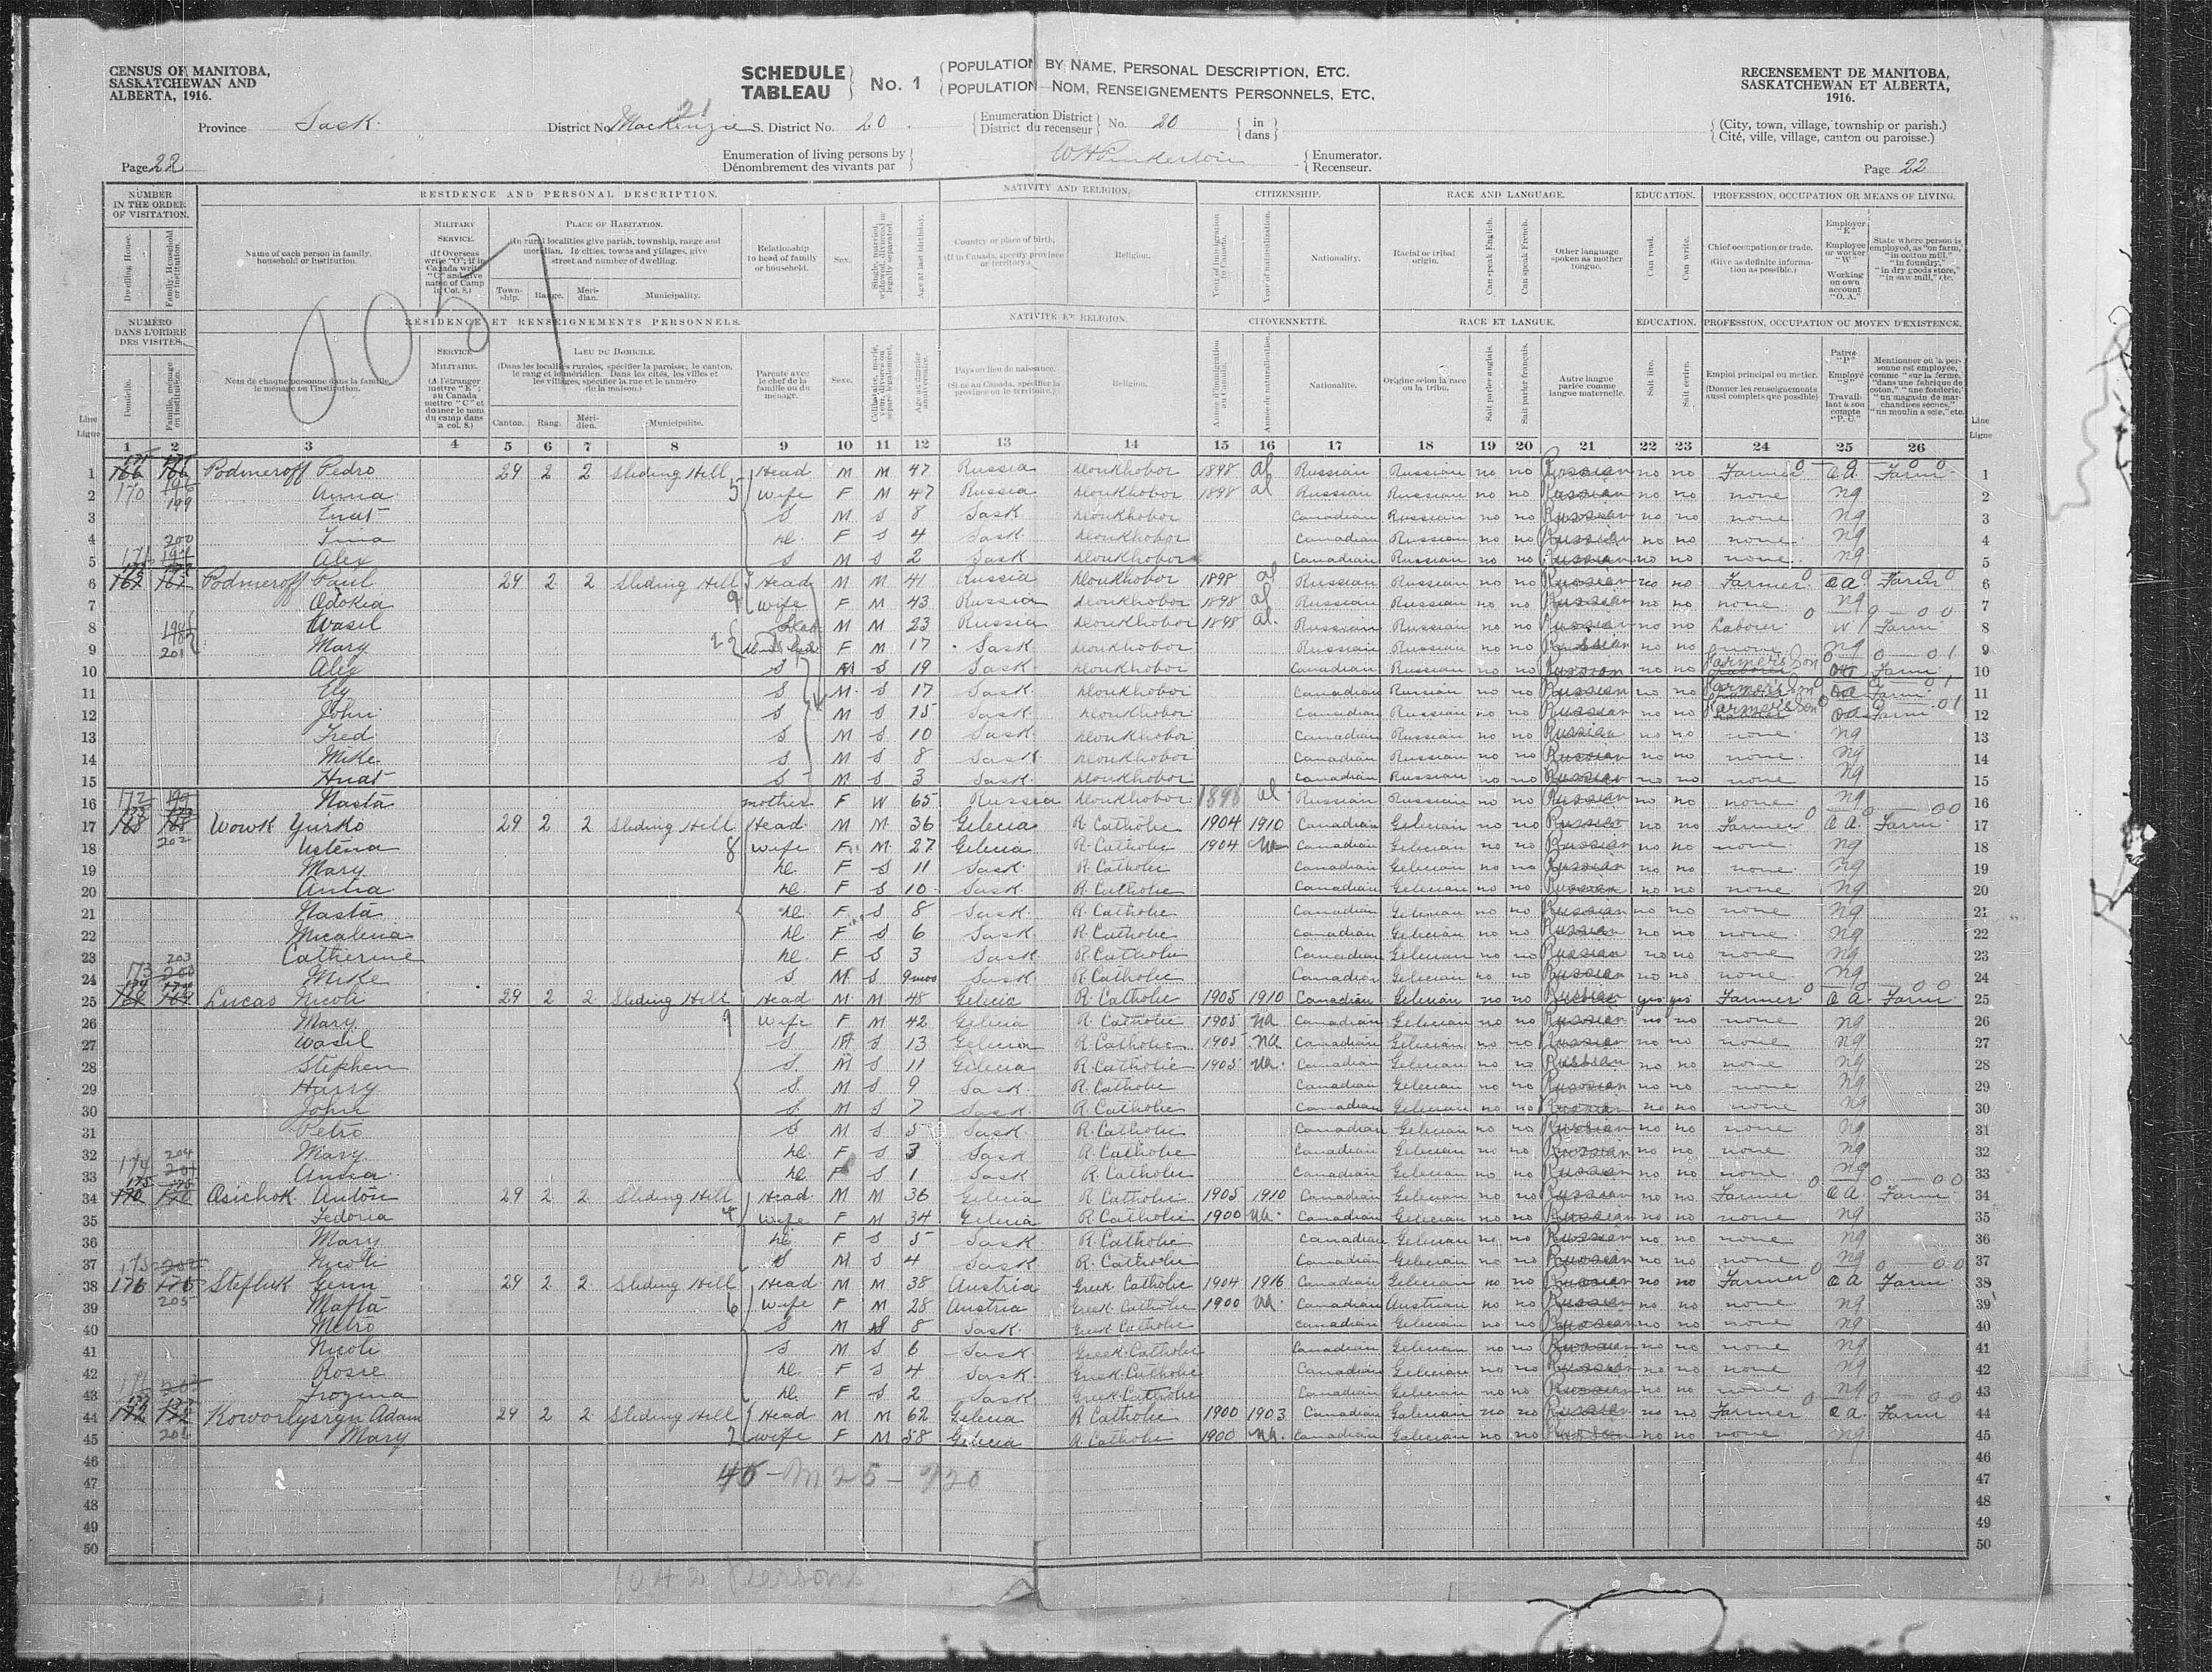 Title: Census of the Prairie Provinces, 1916 - Mikan Number: 3800575 - Microform: t-21938